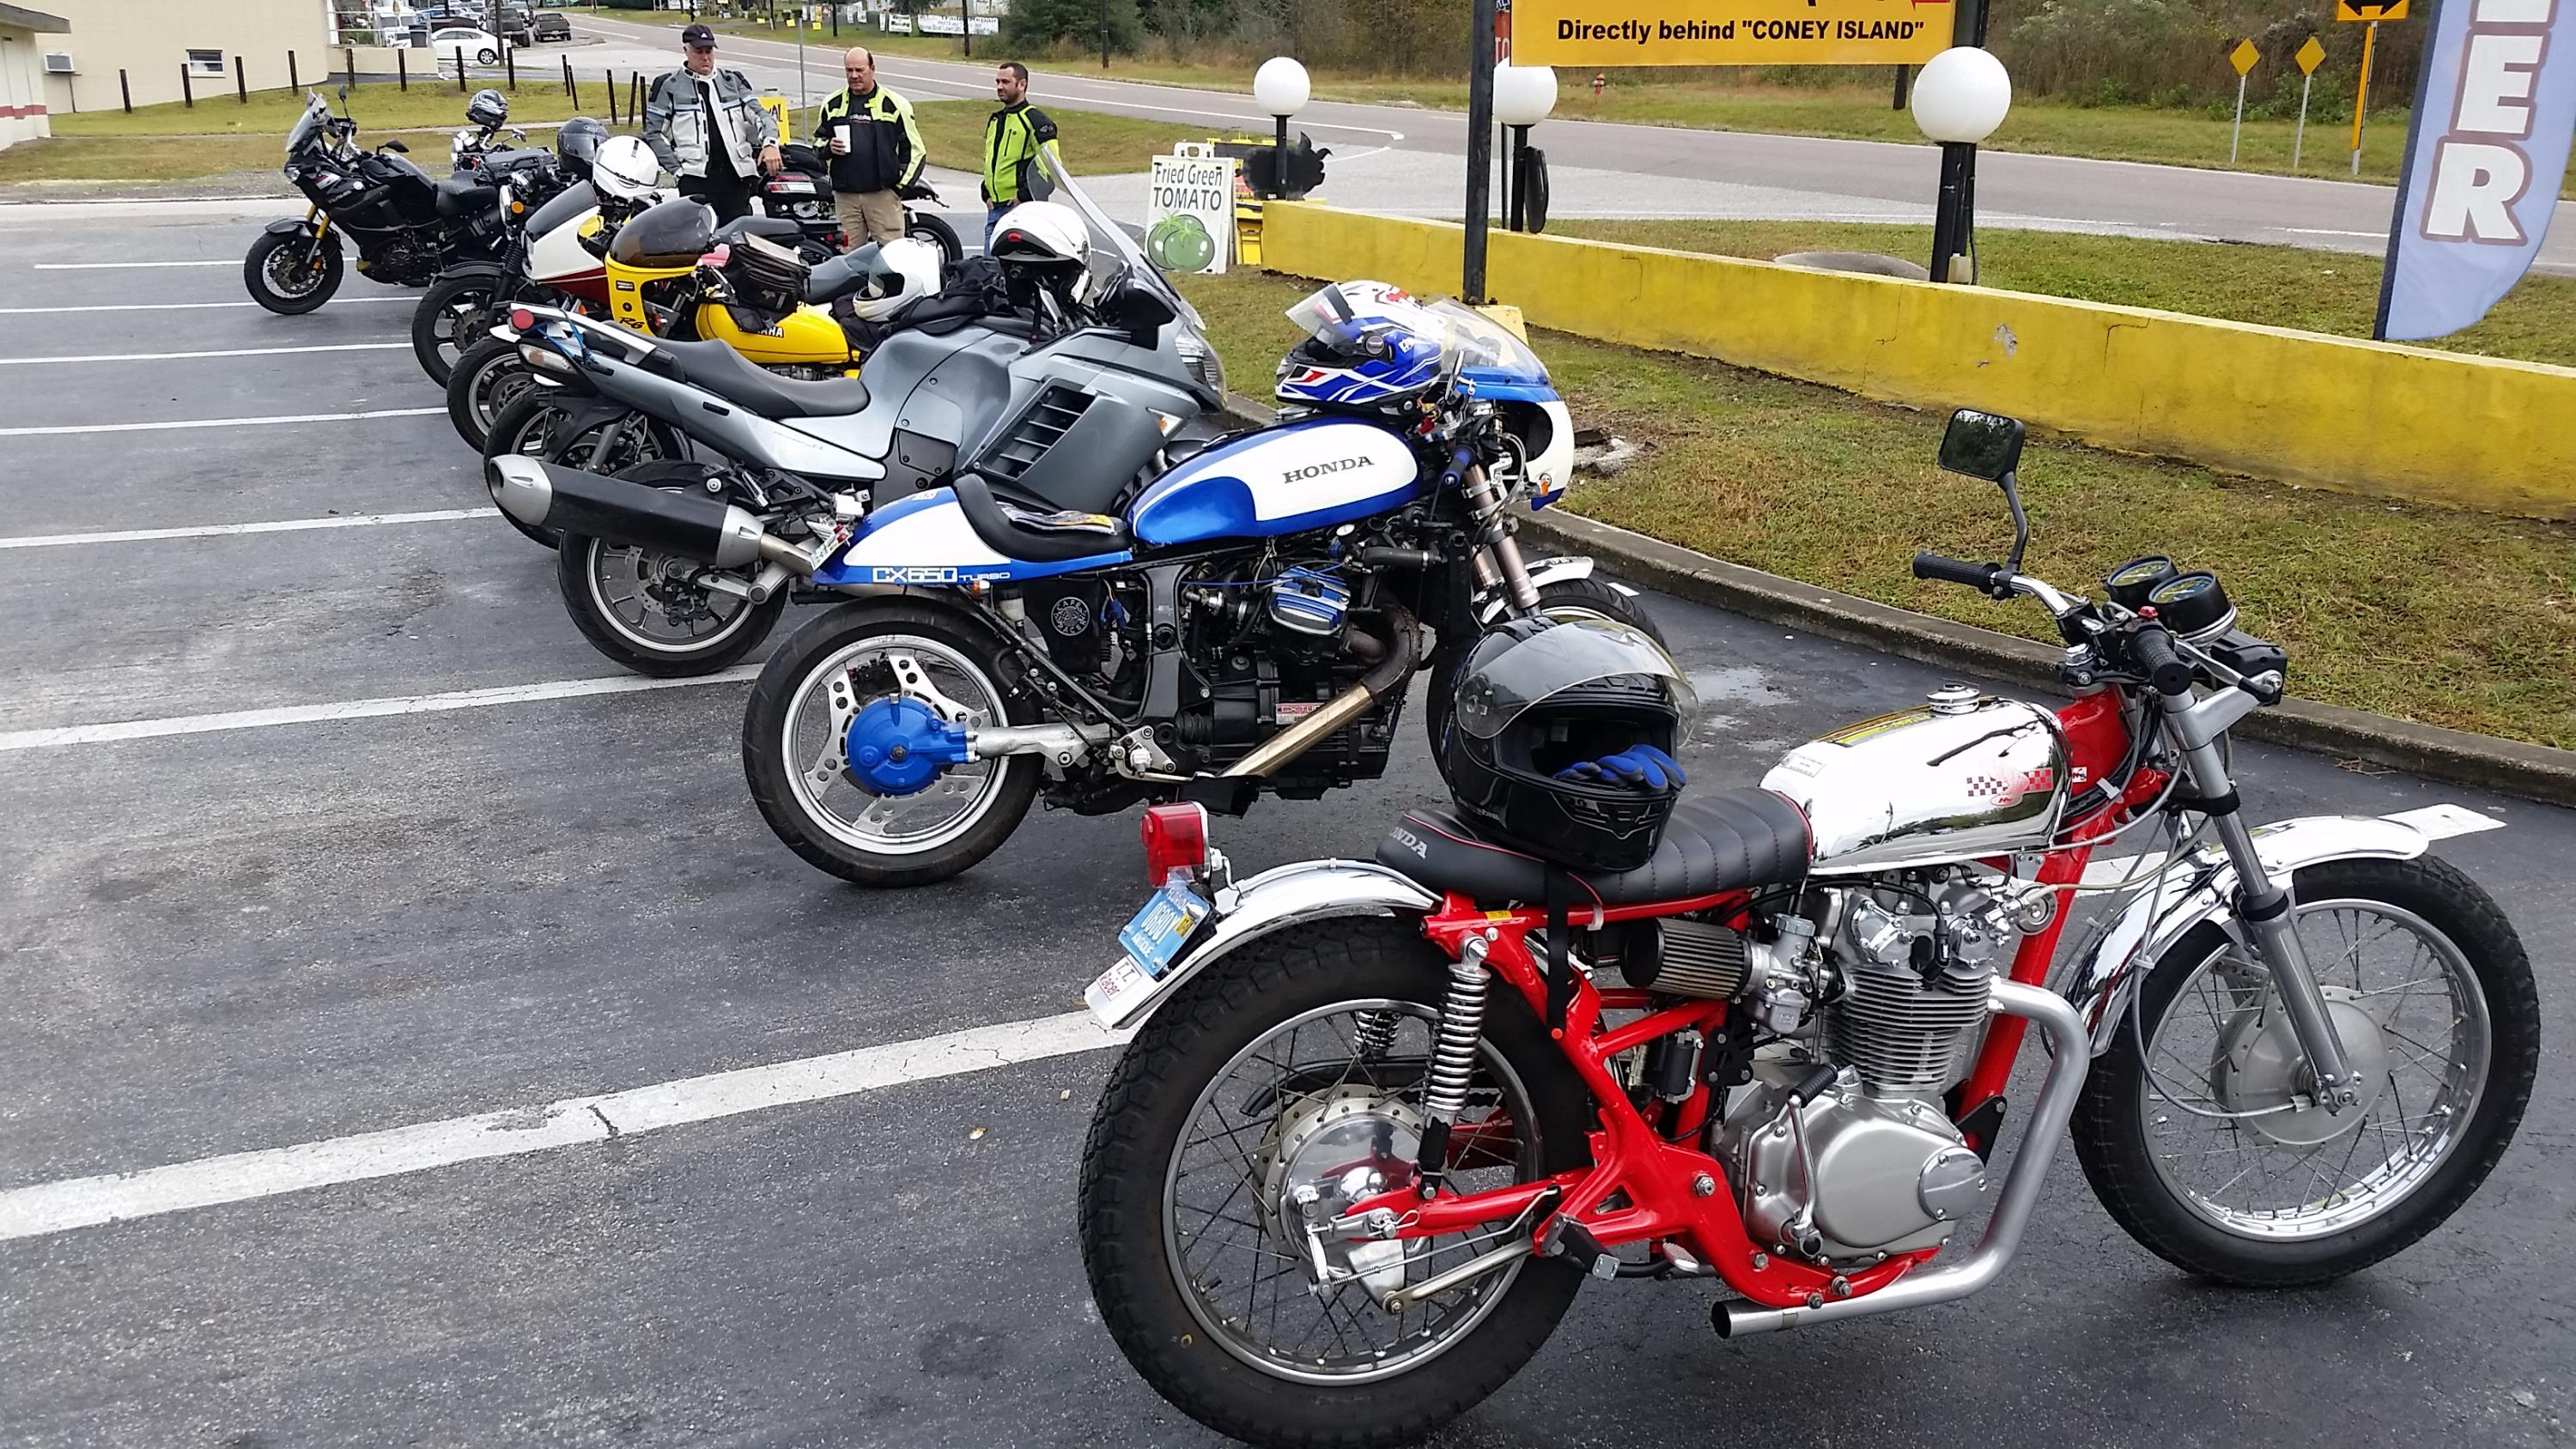 VJMC gathering before unoffical Christmas ride-20181216_095907.jpg